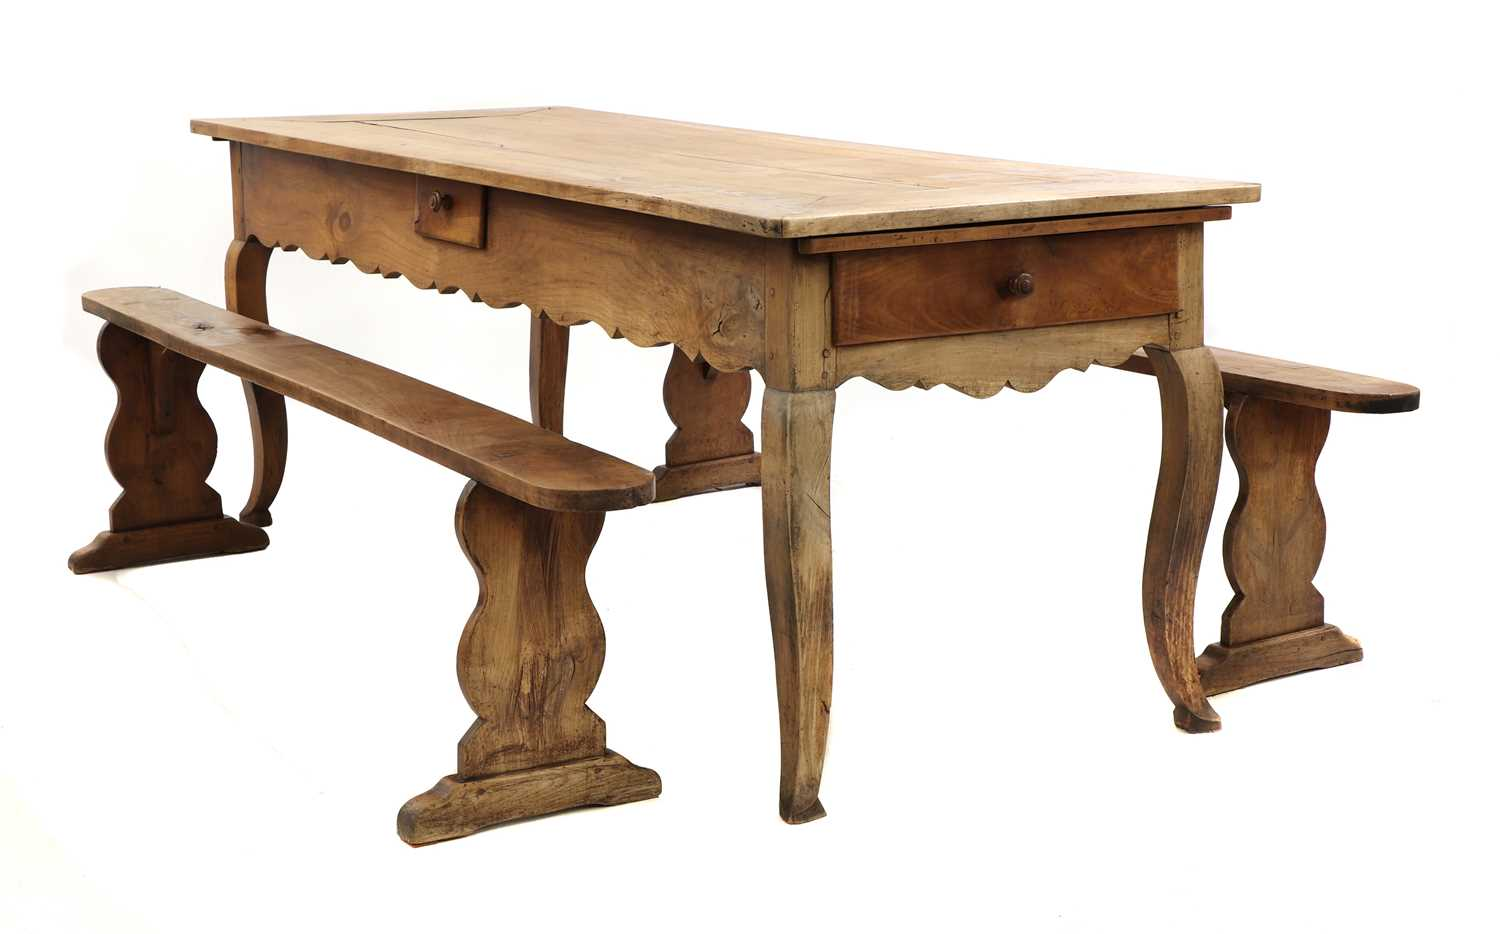 A French provincial sycamore kitchen table,